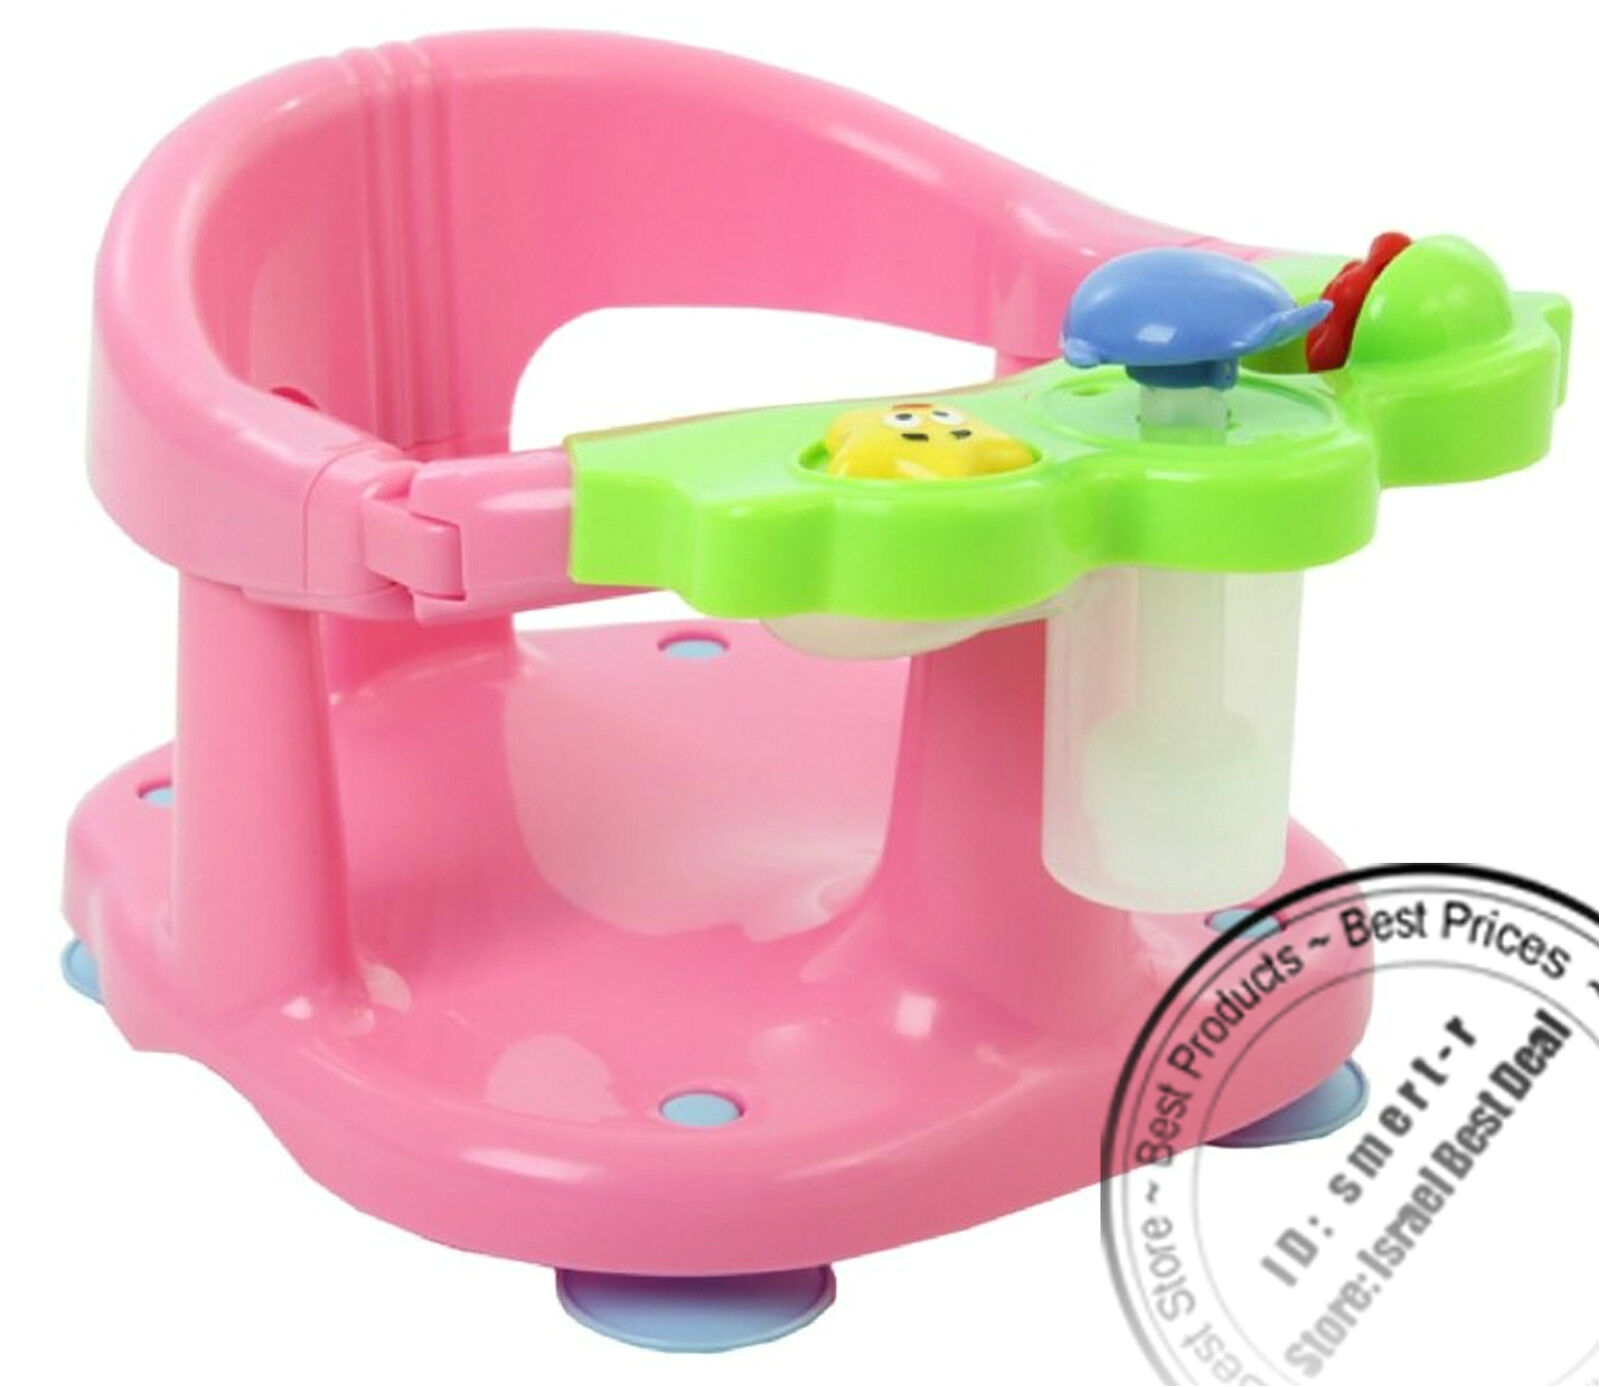 Baby Seat In Bathtub Baby Bath Ring Seat for Tub by Dream Me for Safe